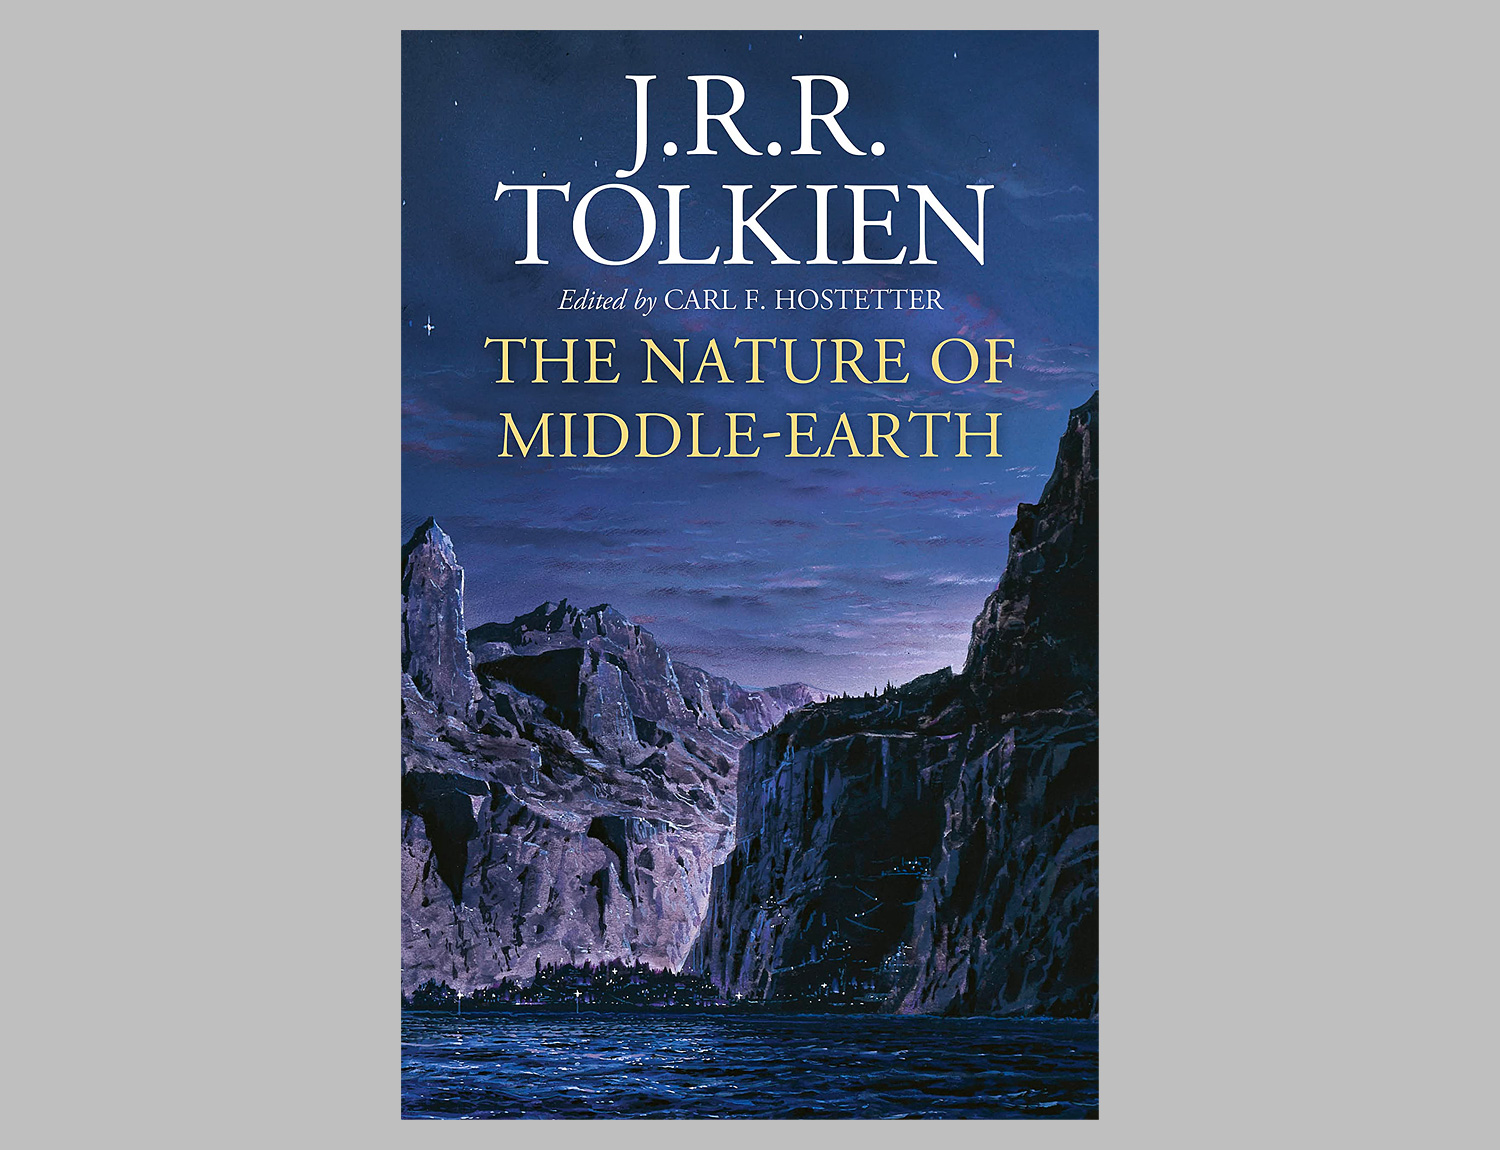 J.R.R. Tolkien's The Nature of Middle-Earth at werd.com